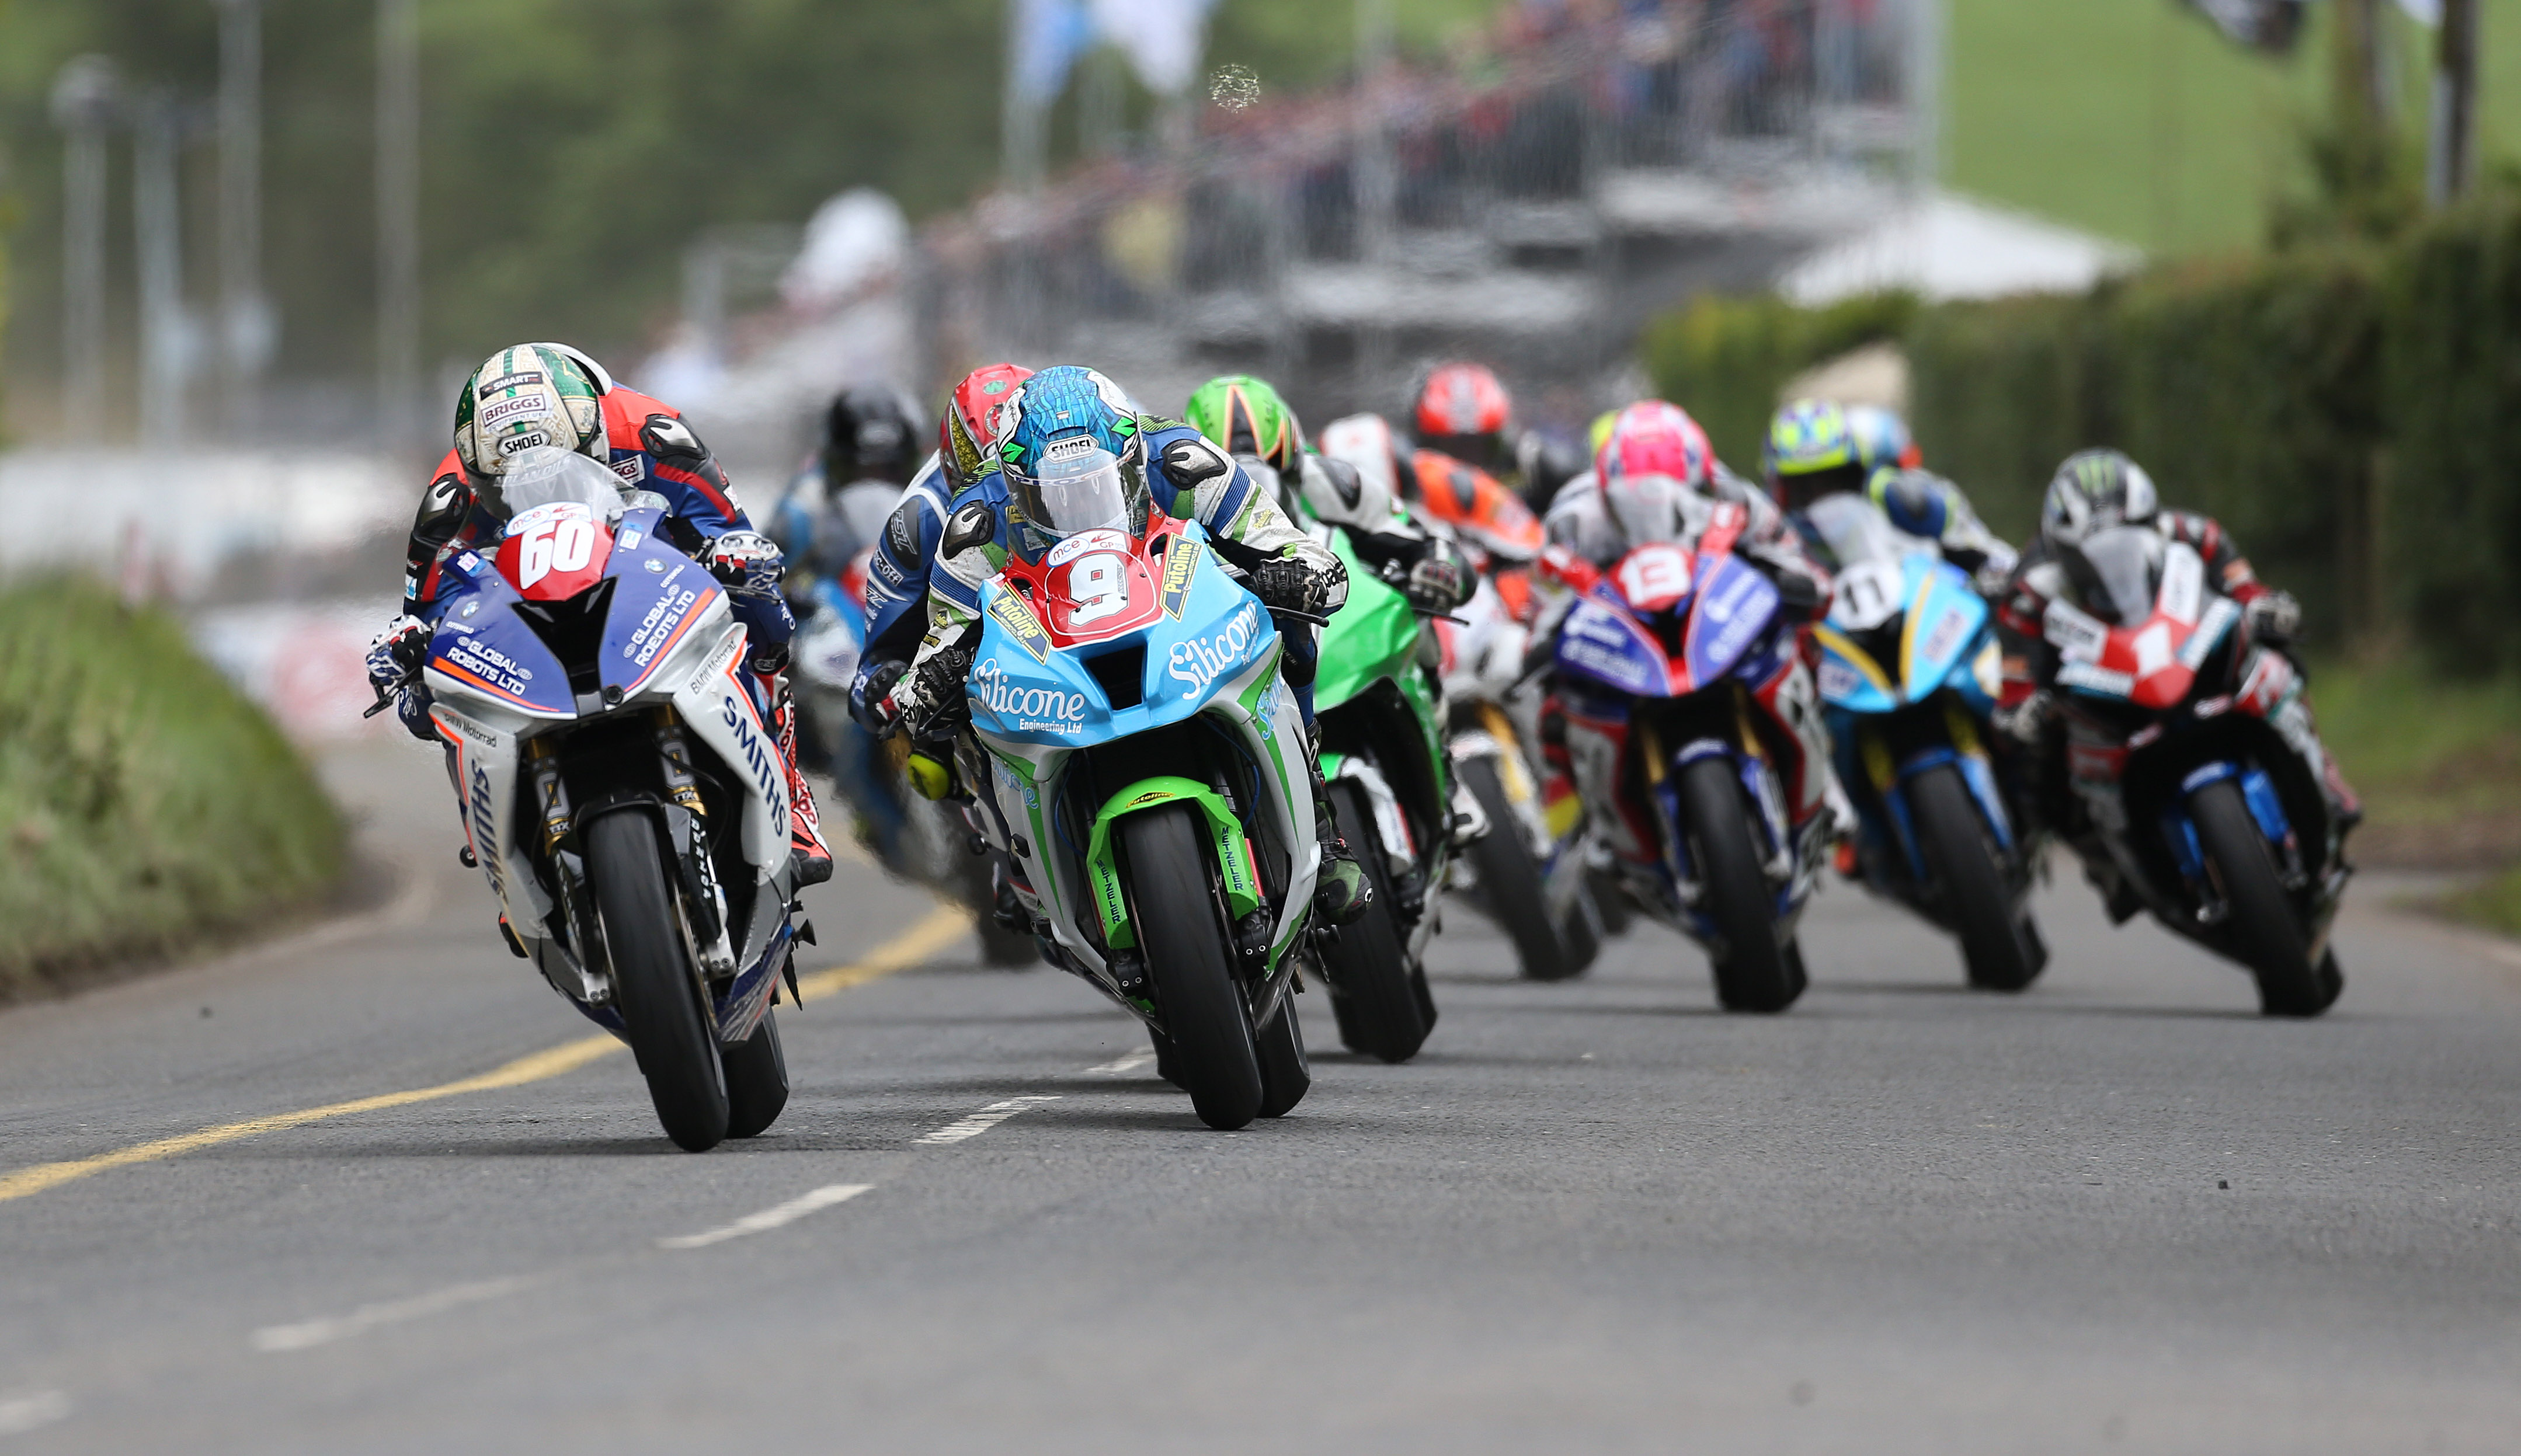 MCE UGP organisers announce big changes to grow event and enhance safety